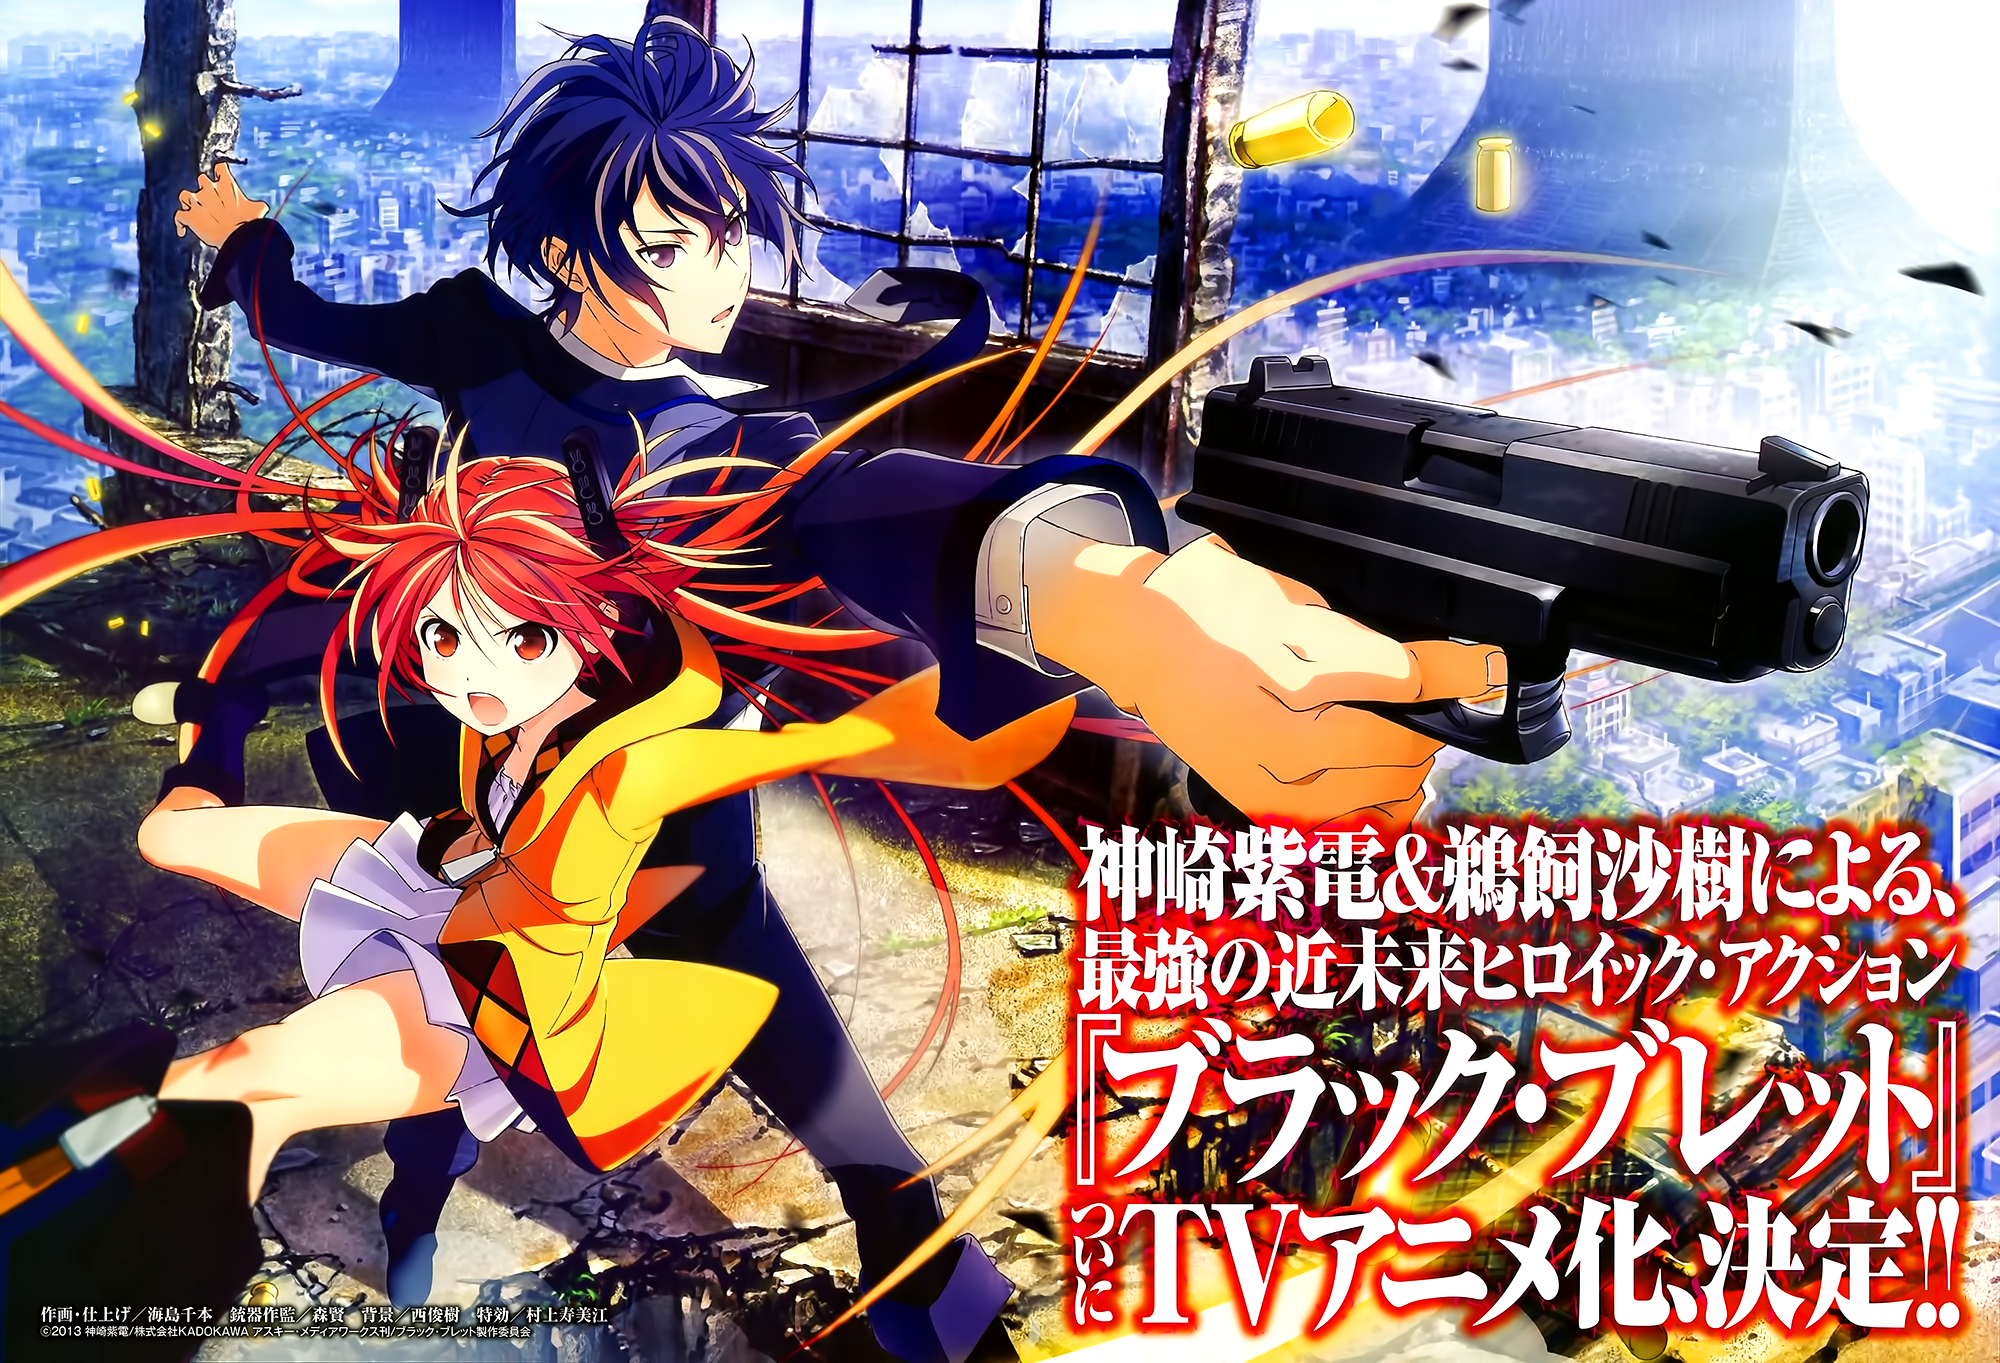 http://vignette1.wikia.nocookie.net/blackbullet2/images/b/b1/Black_Bullet_Anime_Promotional_Poster.png/revision/latest?cb=20131208160232